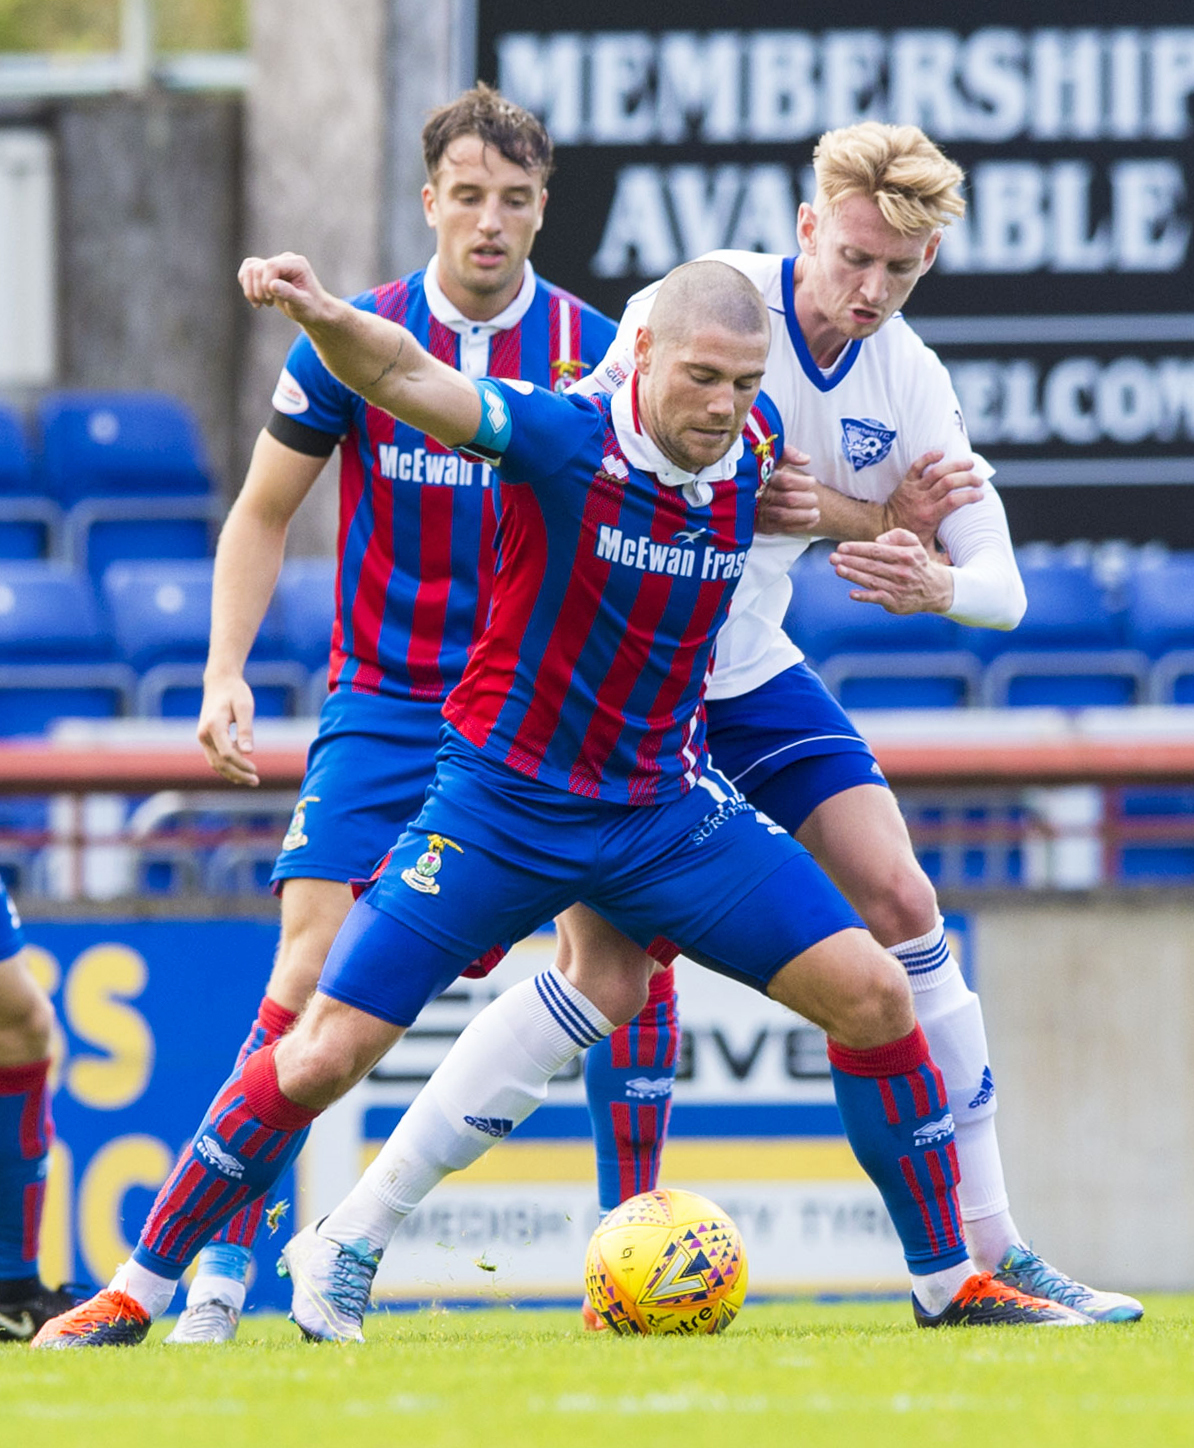 Peterhead forward Russell McLean hopes to add to his goal tally this weekend.